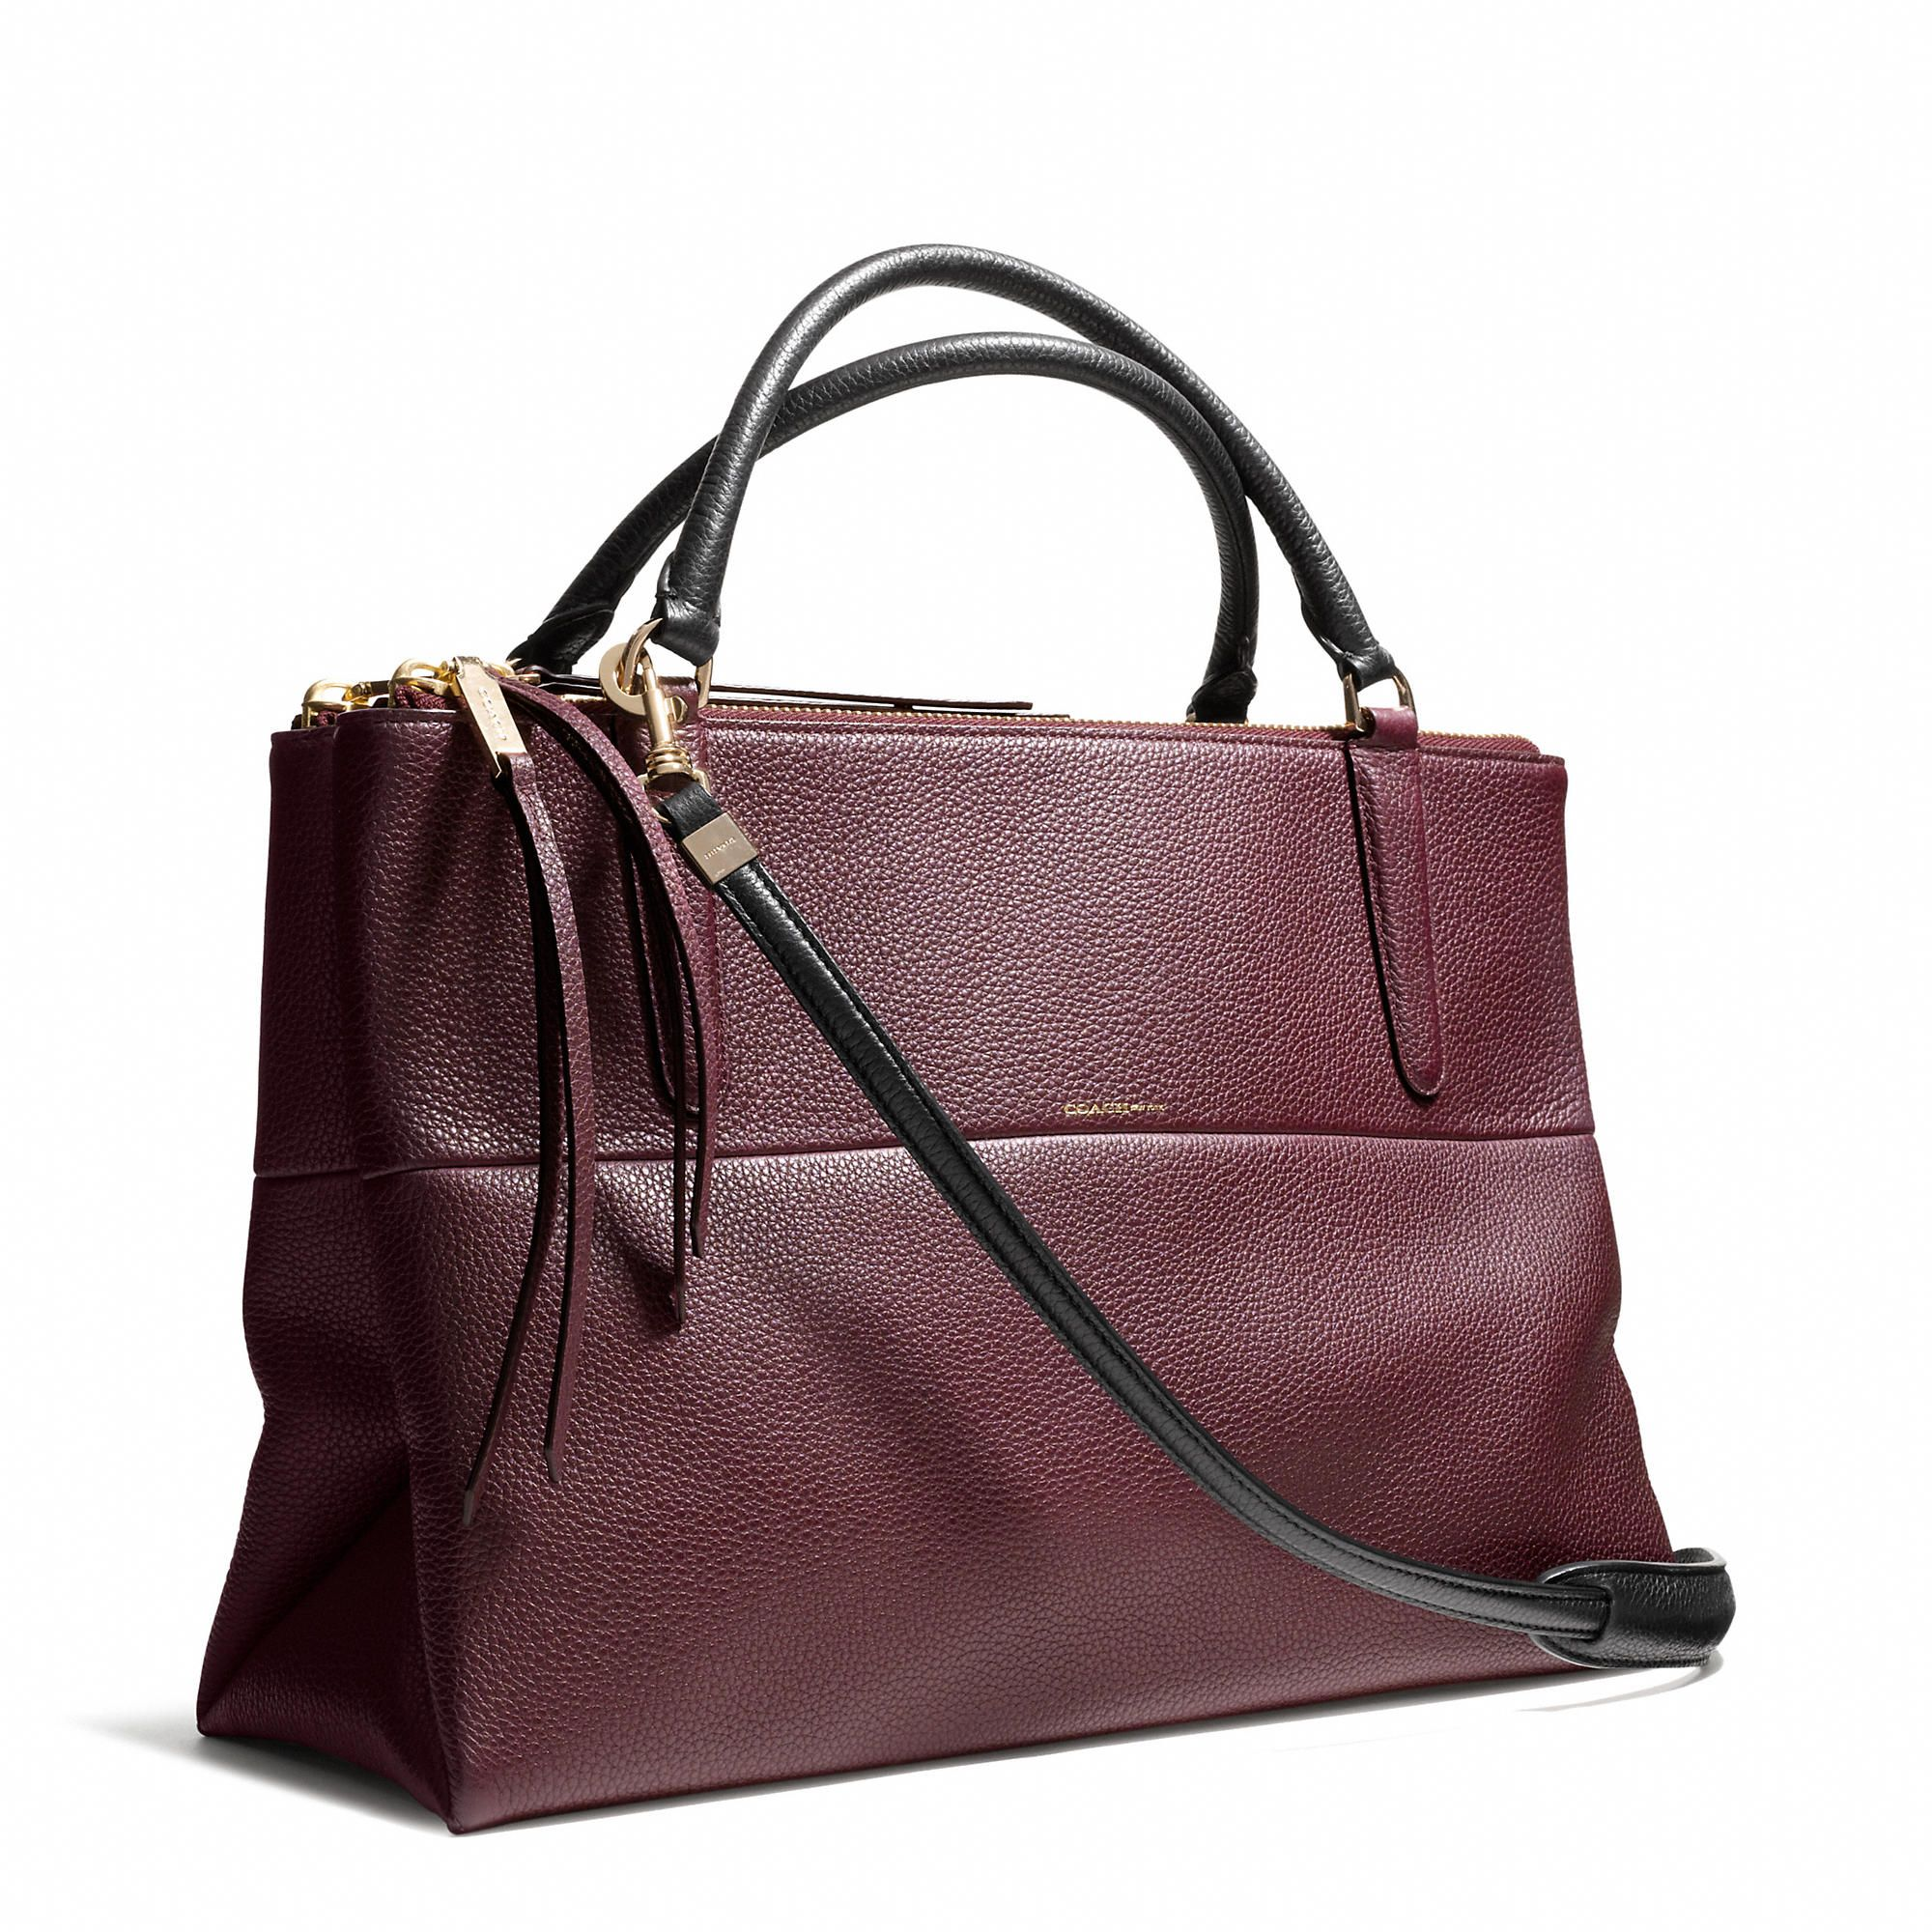 f8bb686b1647 Coach :: THE BOROUGH BAG IN PEBBLED LEATHER | (HANDBAGS) It Bags ...